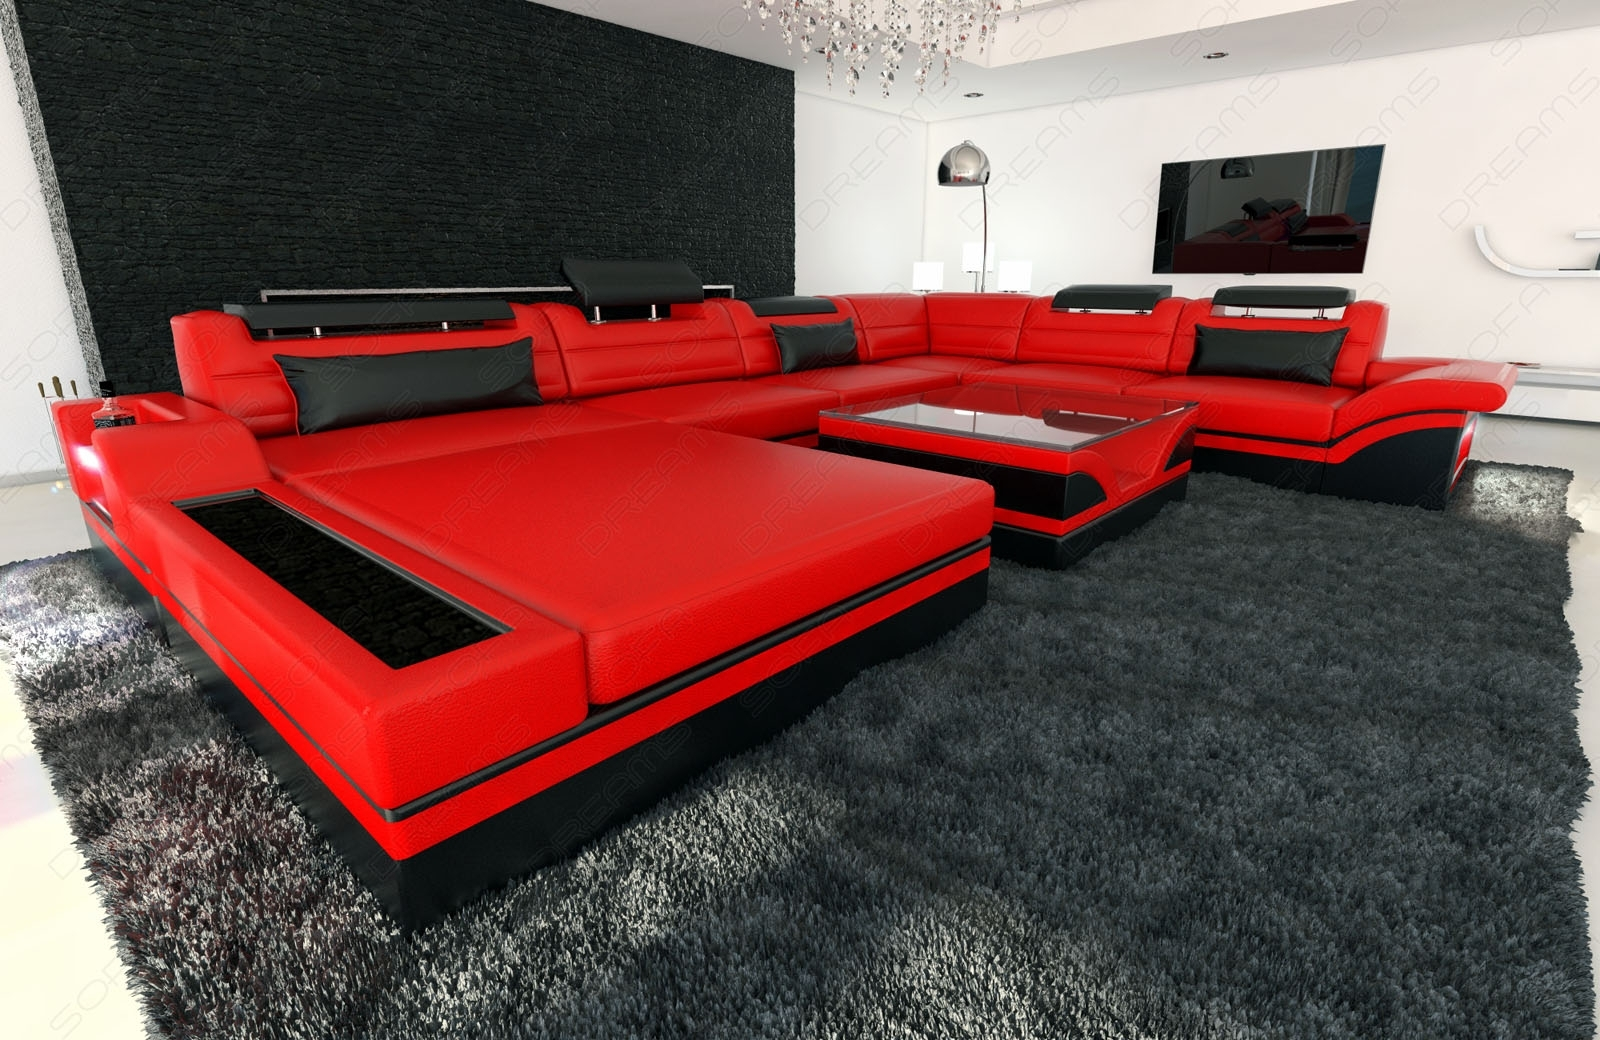 Design Sectional Sofa Mezzo Xxl With Led Lights Red Black | Ebay Intended For Red And Black Sofas (Image 3 of 10)